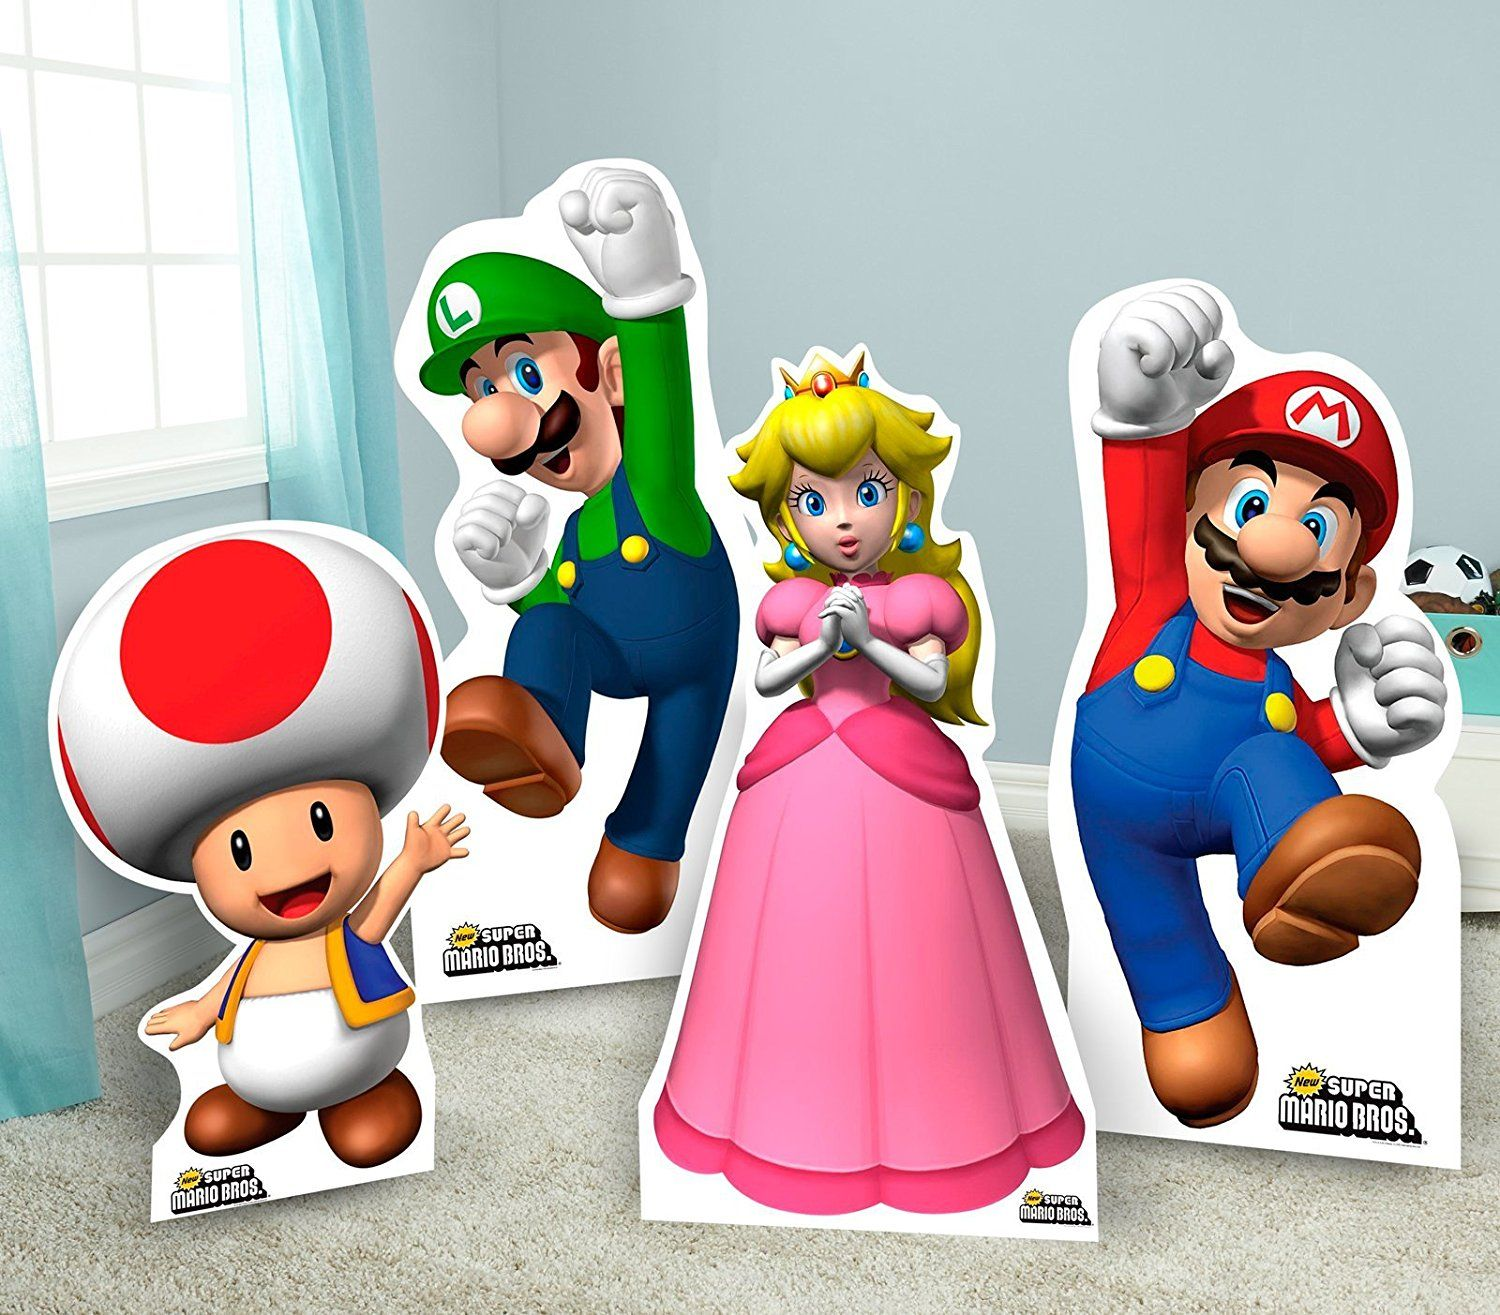 Super Mario Bros Room Decor Life Size Cardboard Standup Combo Kit